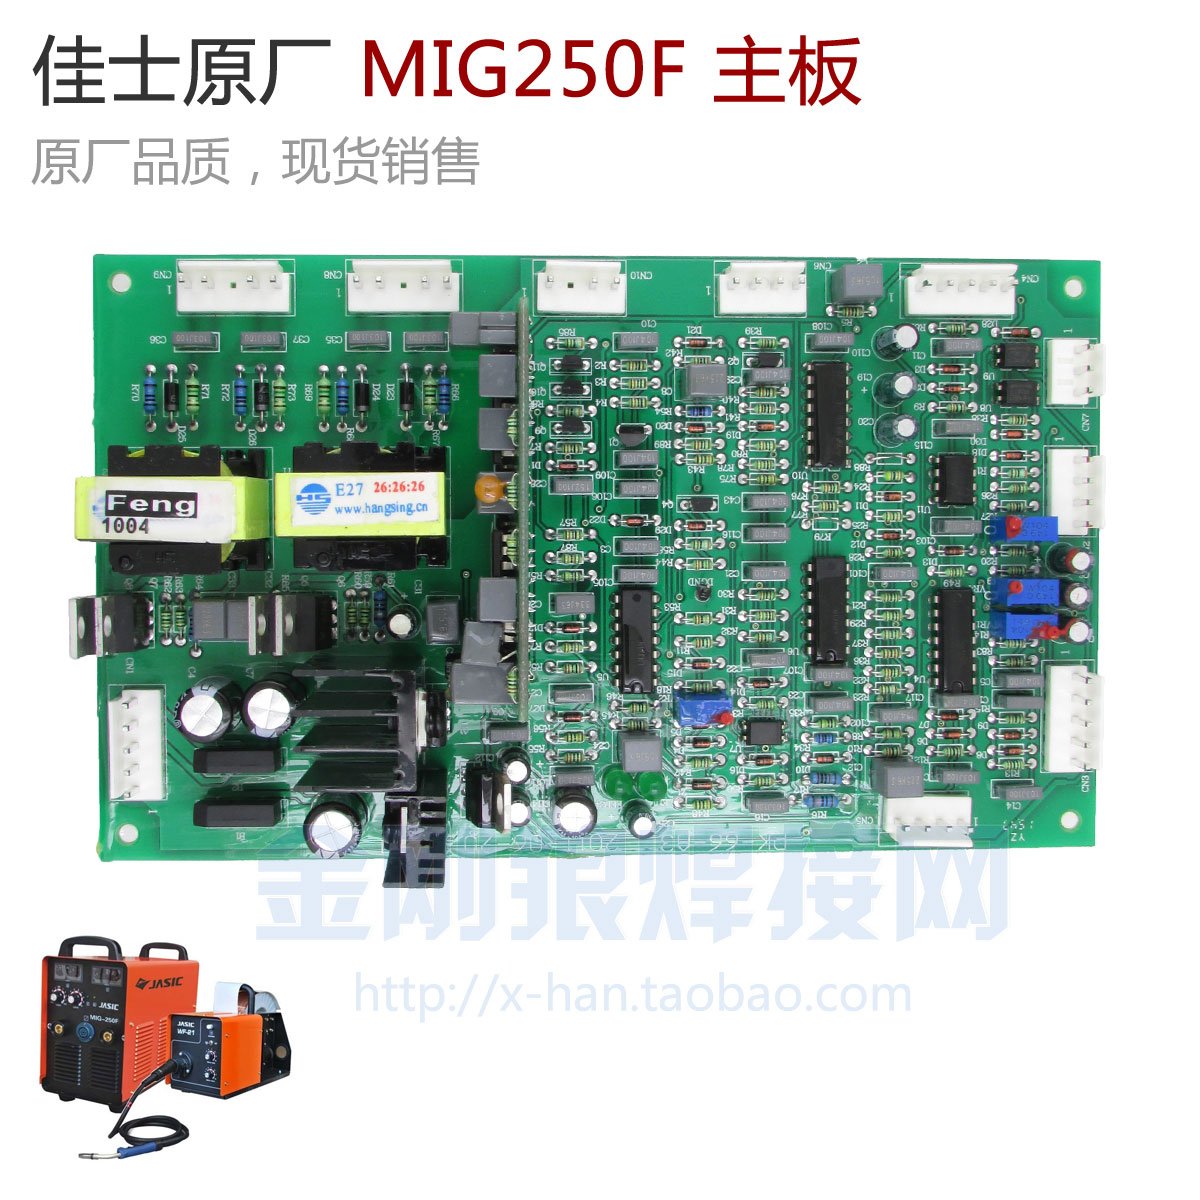 YDT Shenzhen MIG250F carbon dioxide gas shielded welding machine motherboard CO2 two welding circuit board nbc250 315 mos inverter carbon dioxide gas shielded welding machine control board circuit board